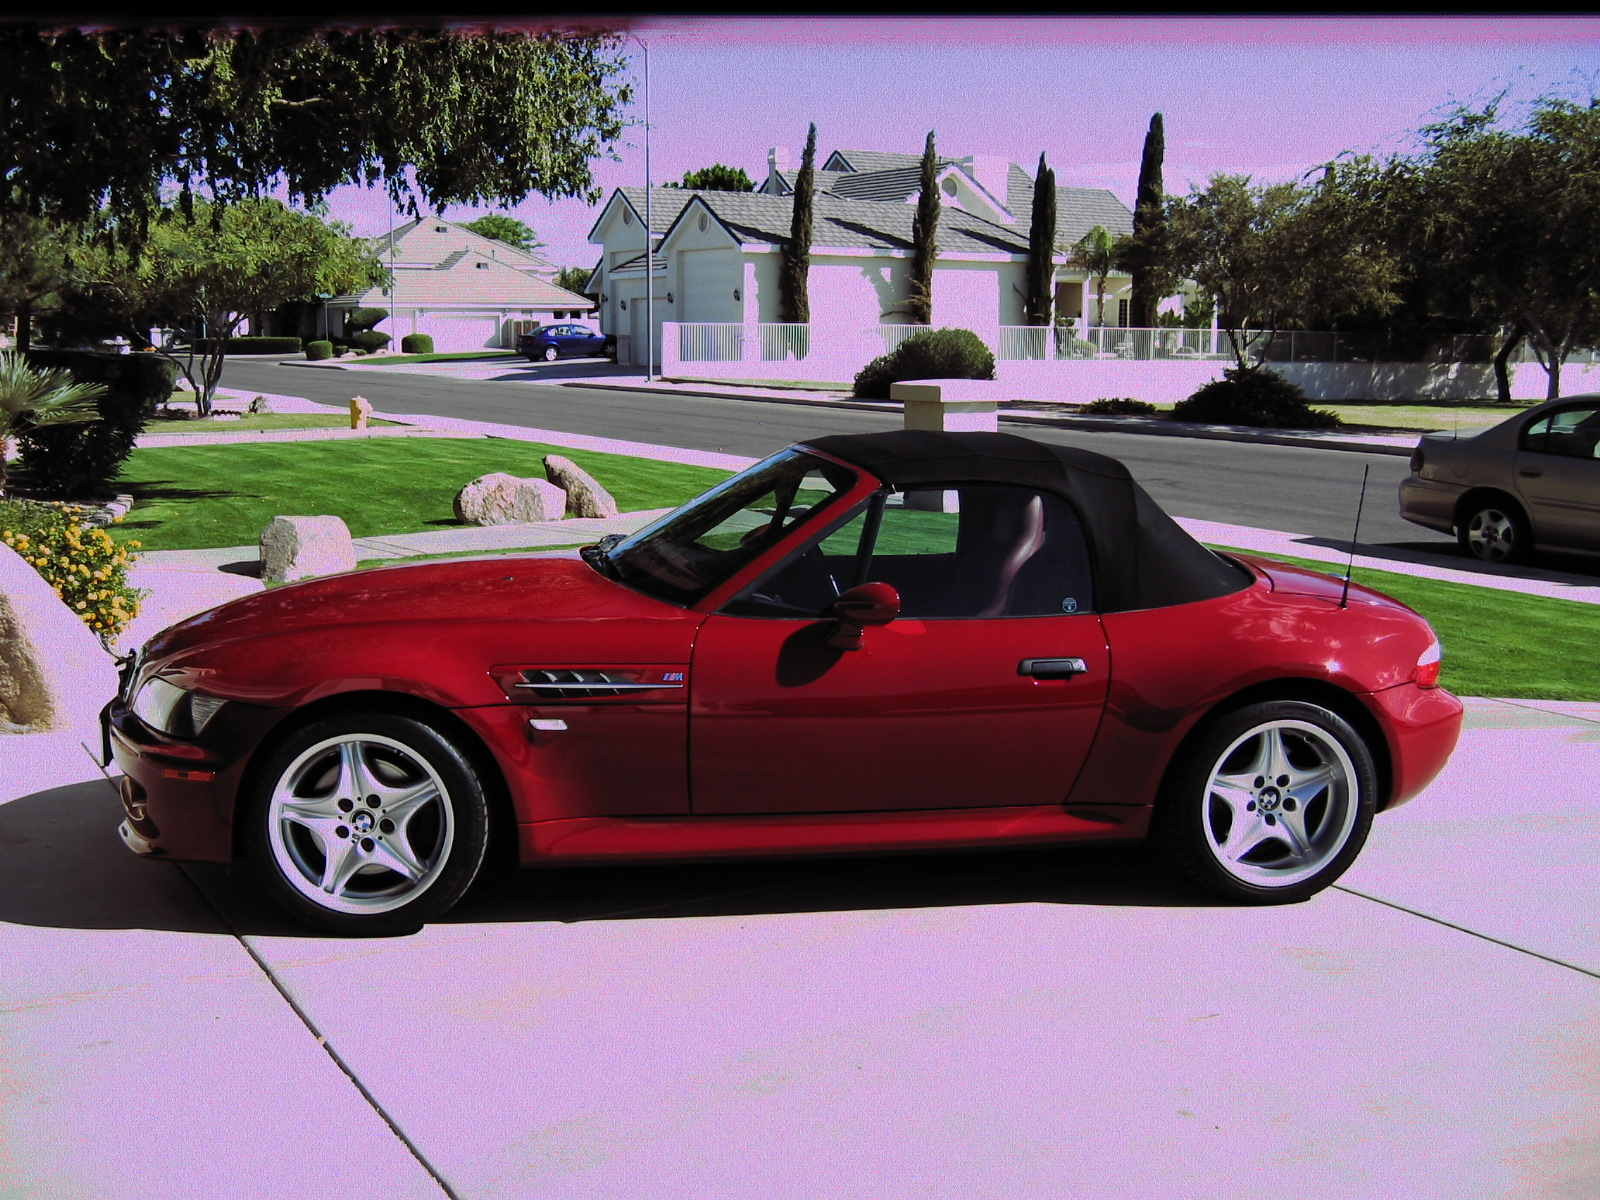 1999 Bmw M Roadster Z3 Imola Red 2dr Convertible Sold